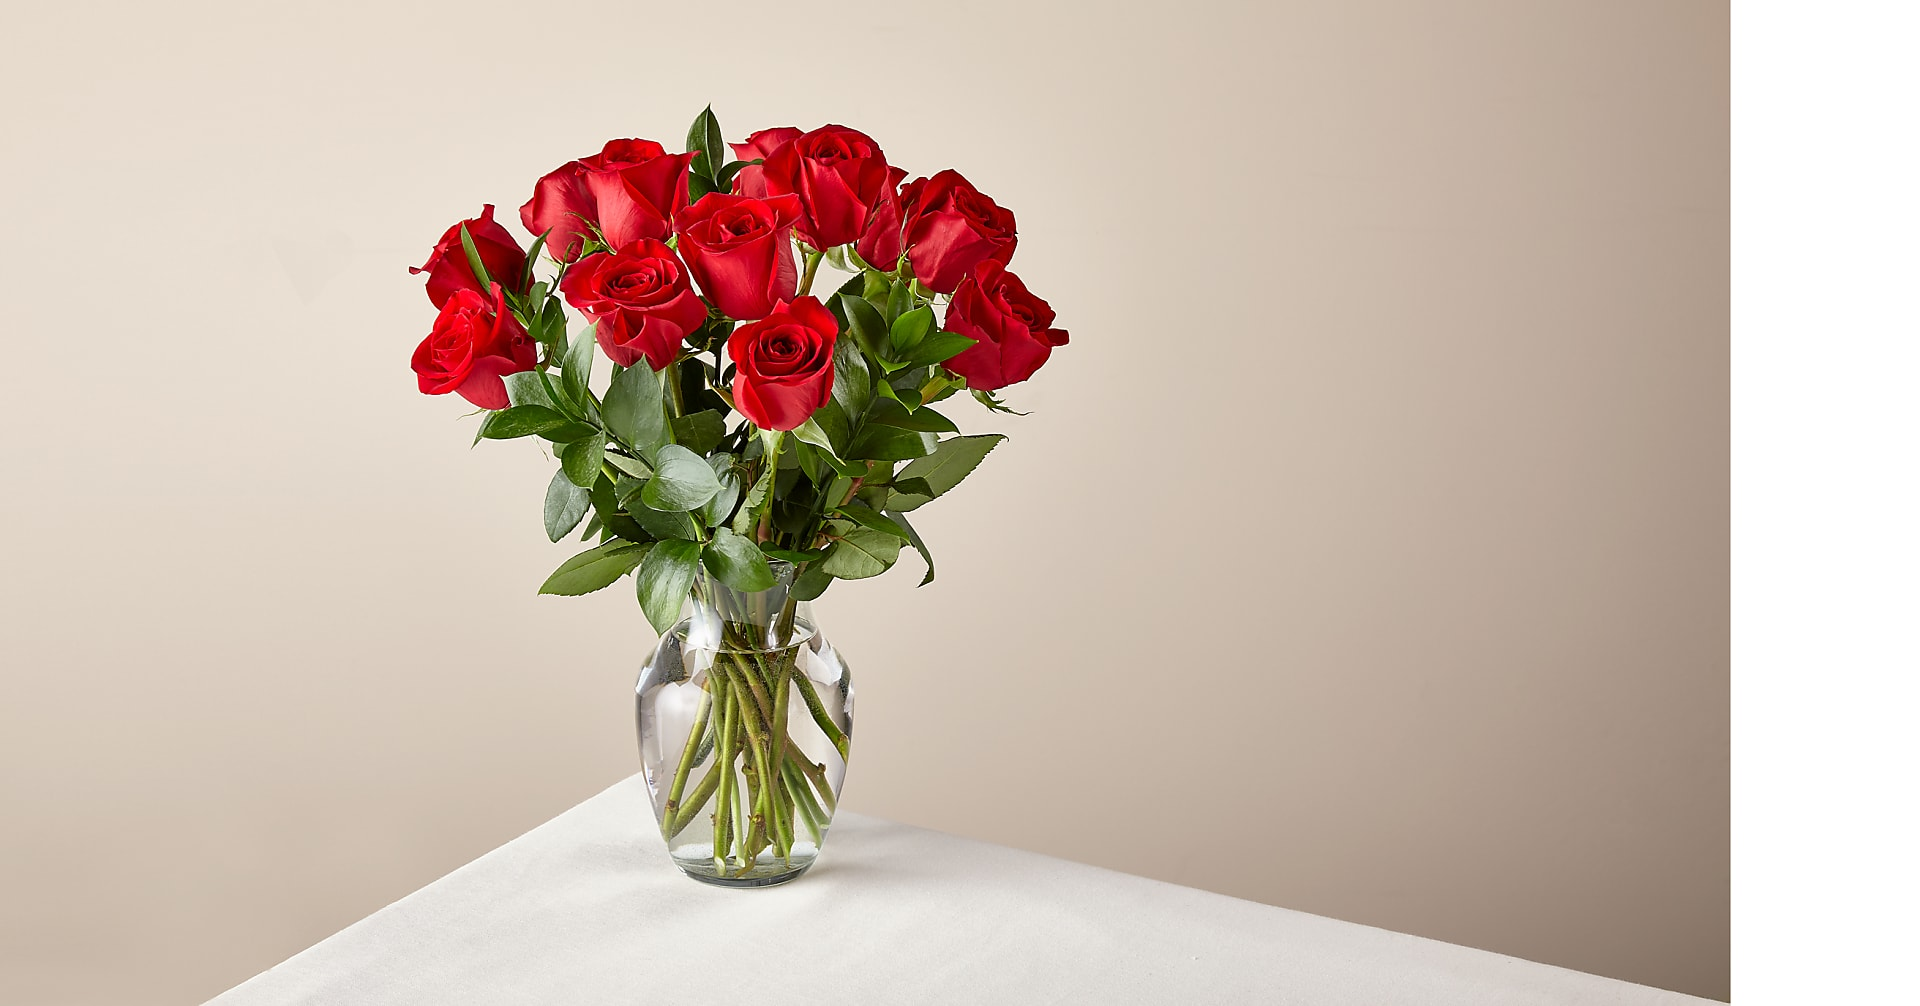 12 Red Roses with Glass Vase - Image 1 Of 4